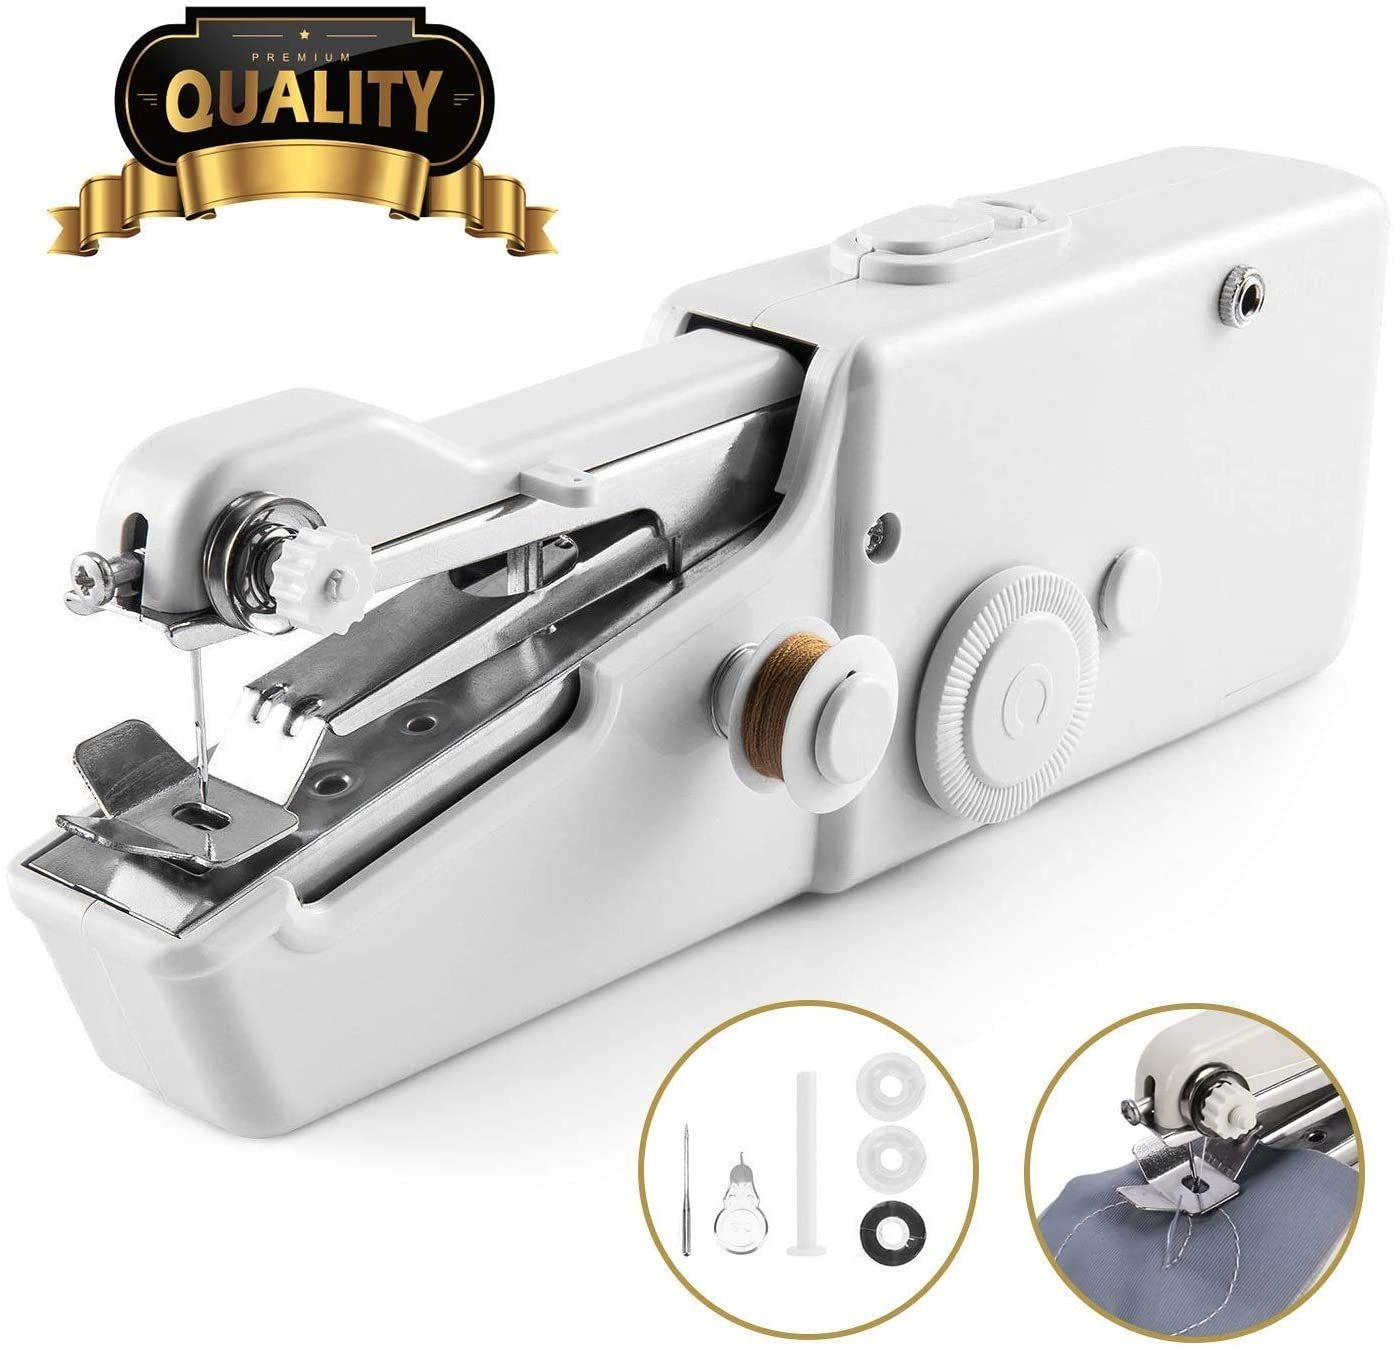 (EARLY SUMMER HOT SALE - 50% OFF & BUY 2 FREE SHIPPING) Portable Handheld Sewing Machine